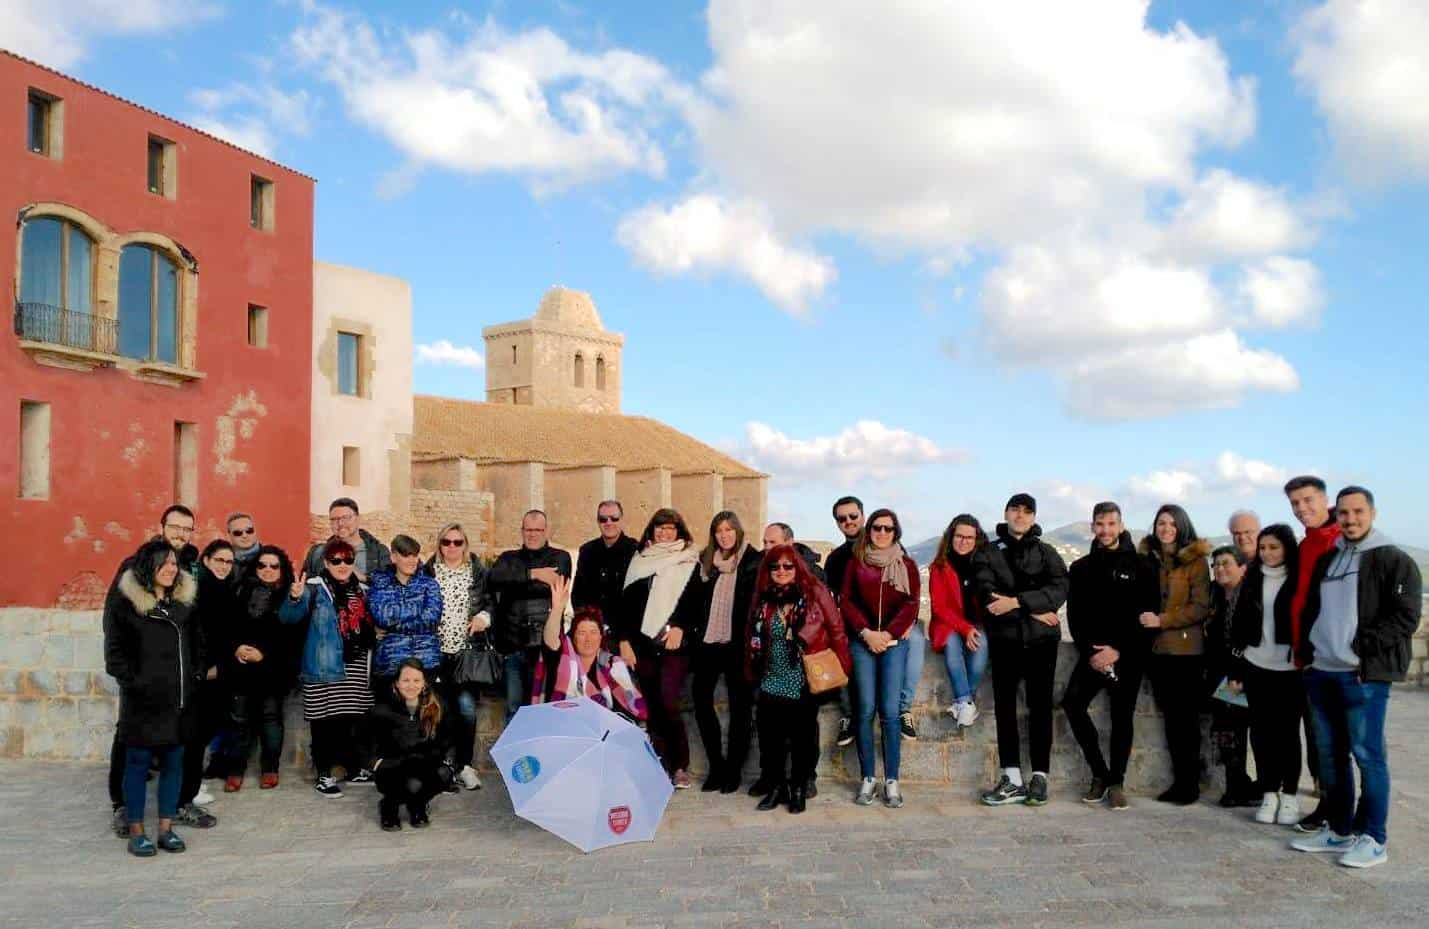 Eivissa city Tours